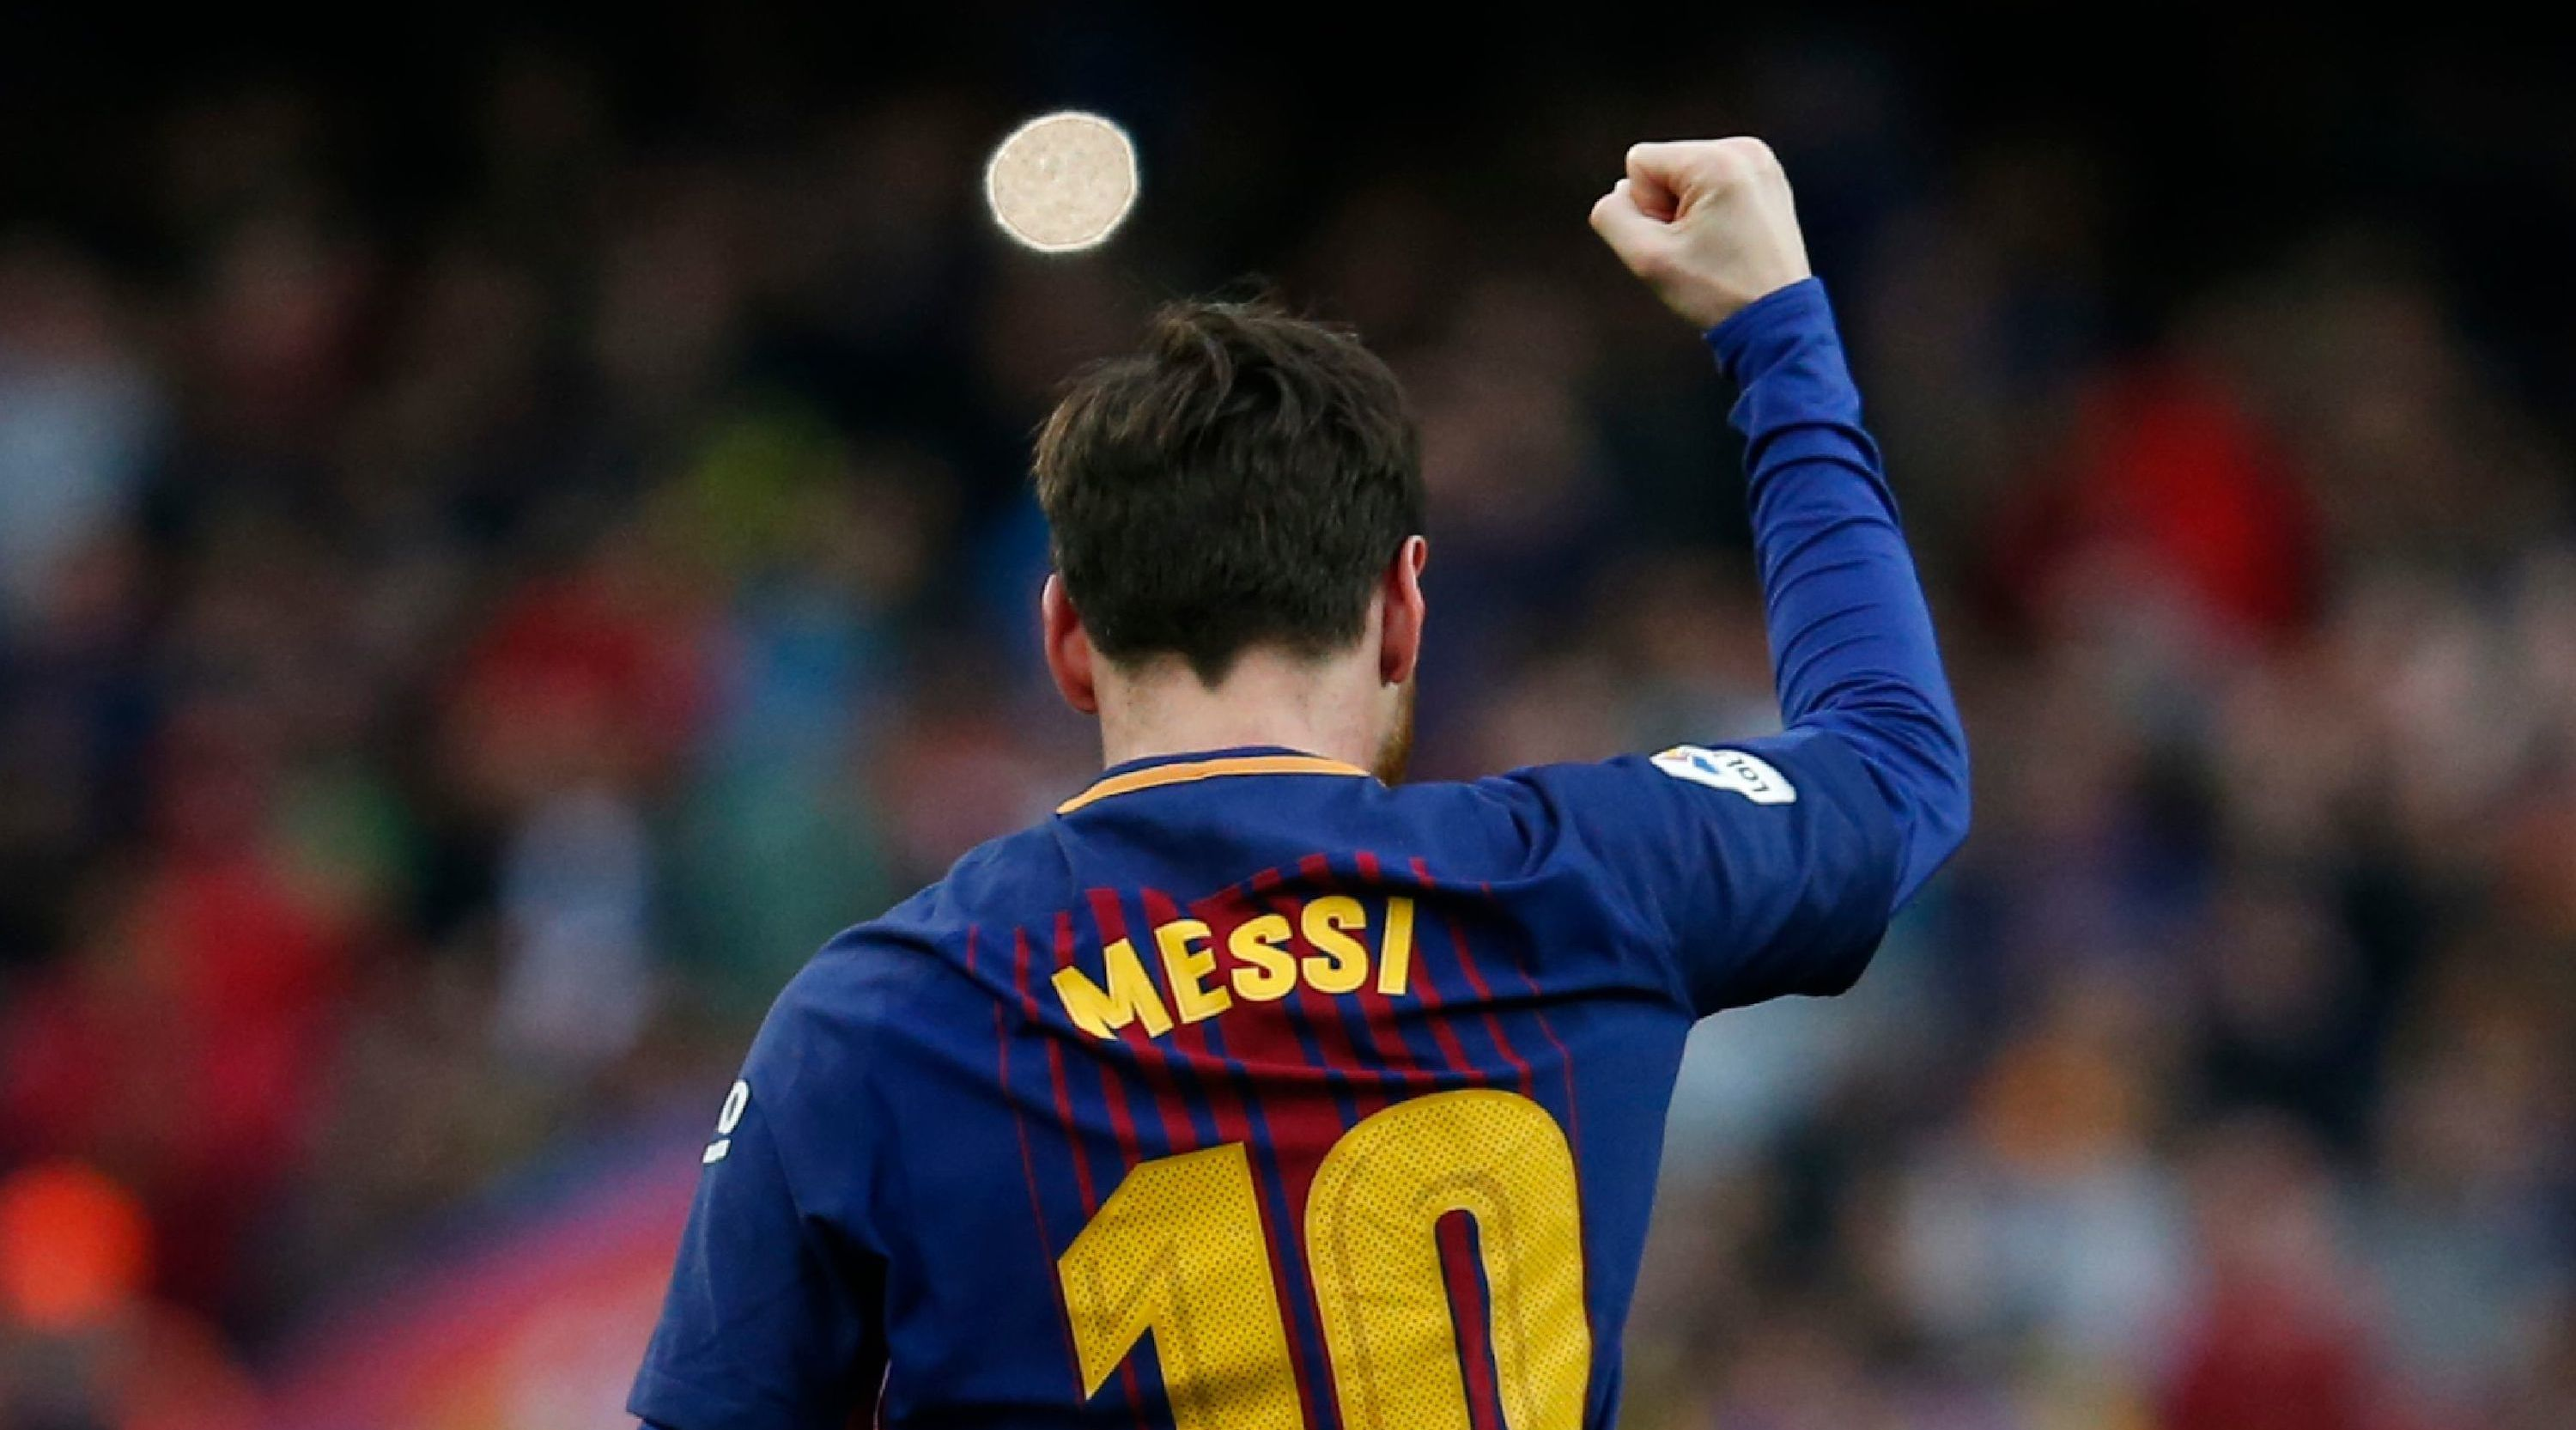 Barcelona's Argentinian forward Lionel Messi celebrates after scoring during the Spanish league football match FC Barcelona against Club Atletico de Madrid at the Camp Nou stadium in Barcelona on March 04, 2018. / AFP PHOTO / Pau Barrena (Photo credit should read PAU BARRENA/AFP/Getty Images)